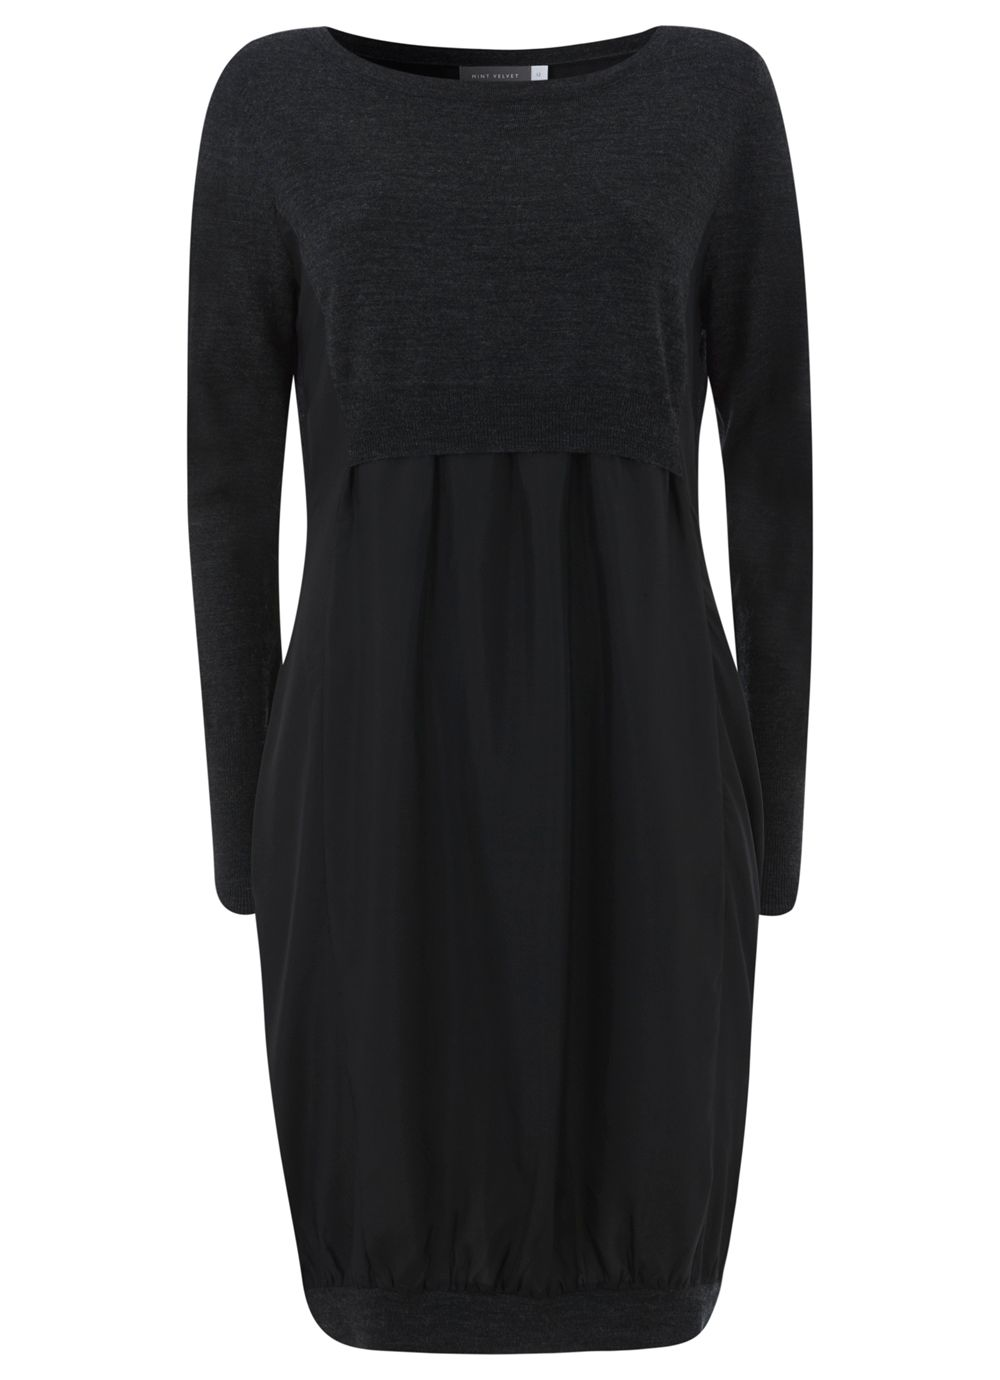 Charcoal & Black Silk & Knit Dress